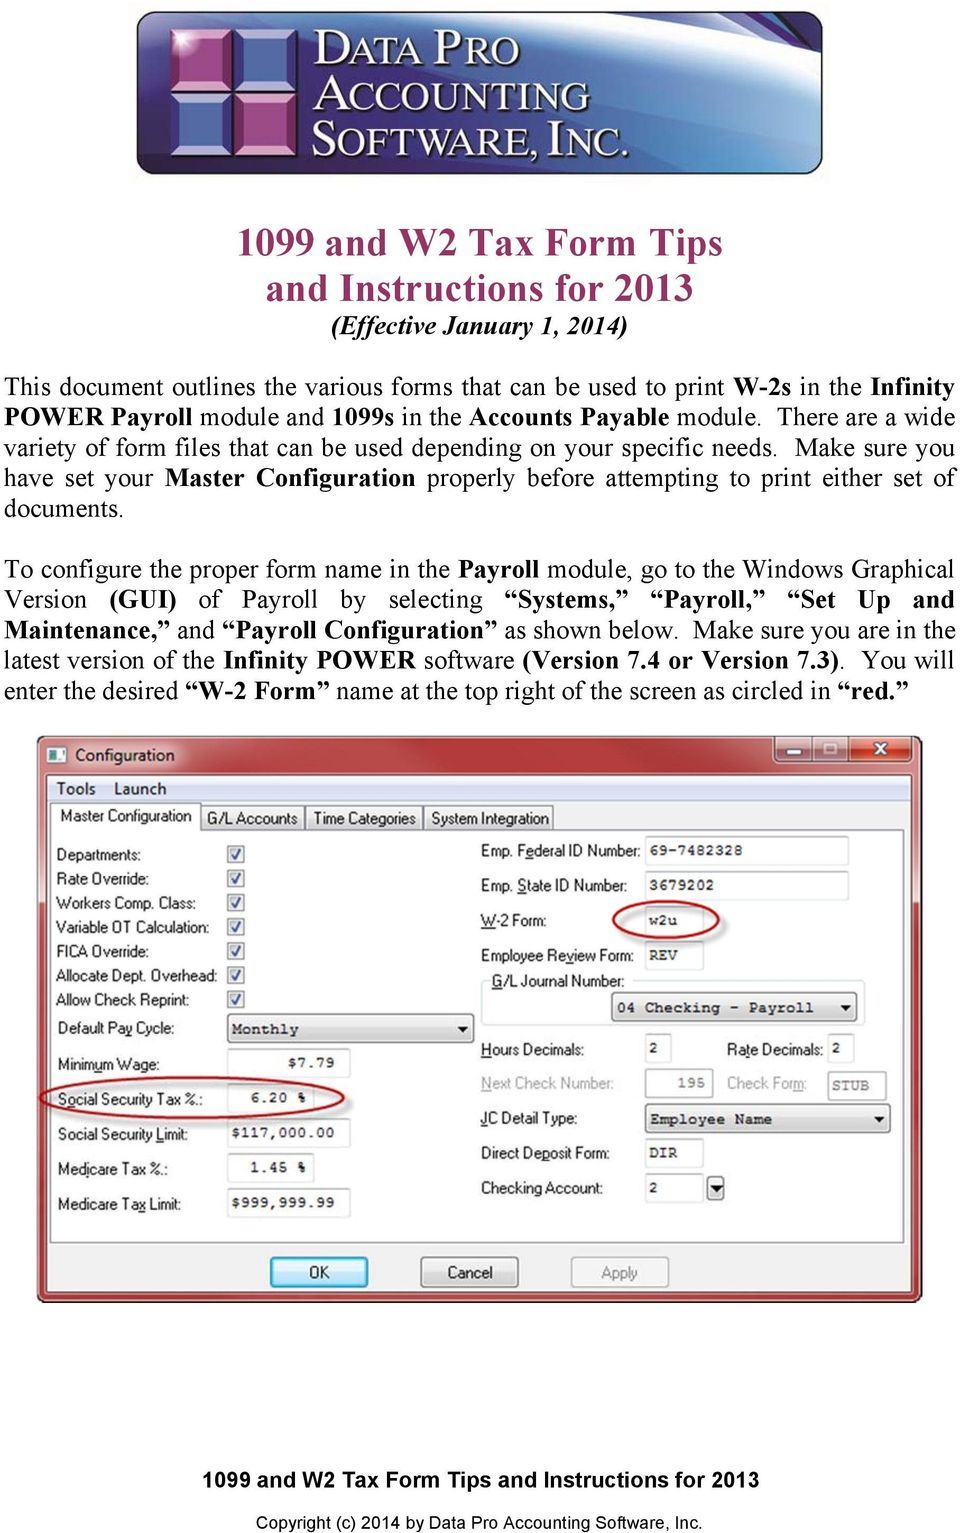 1099 and W2 Tax Form Tips and Instructions for 2013